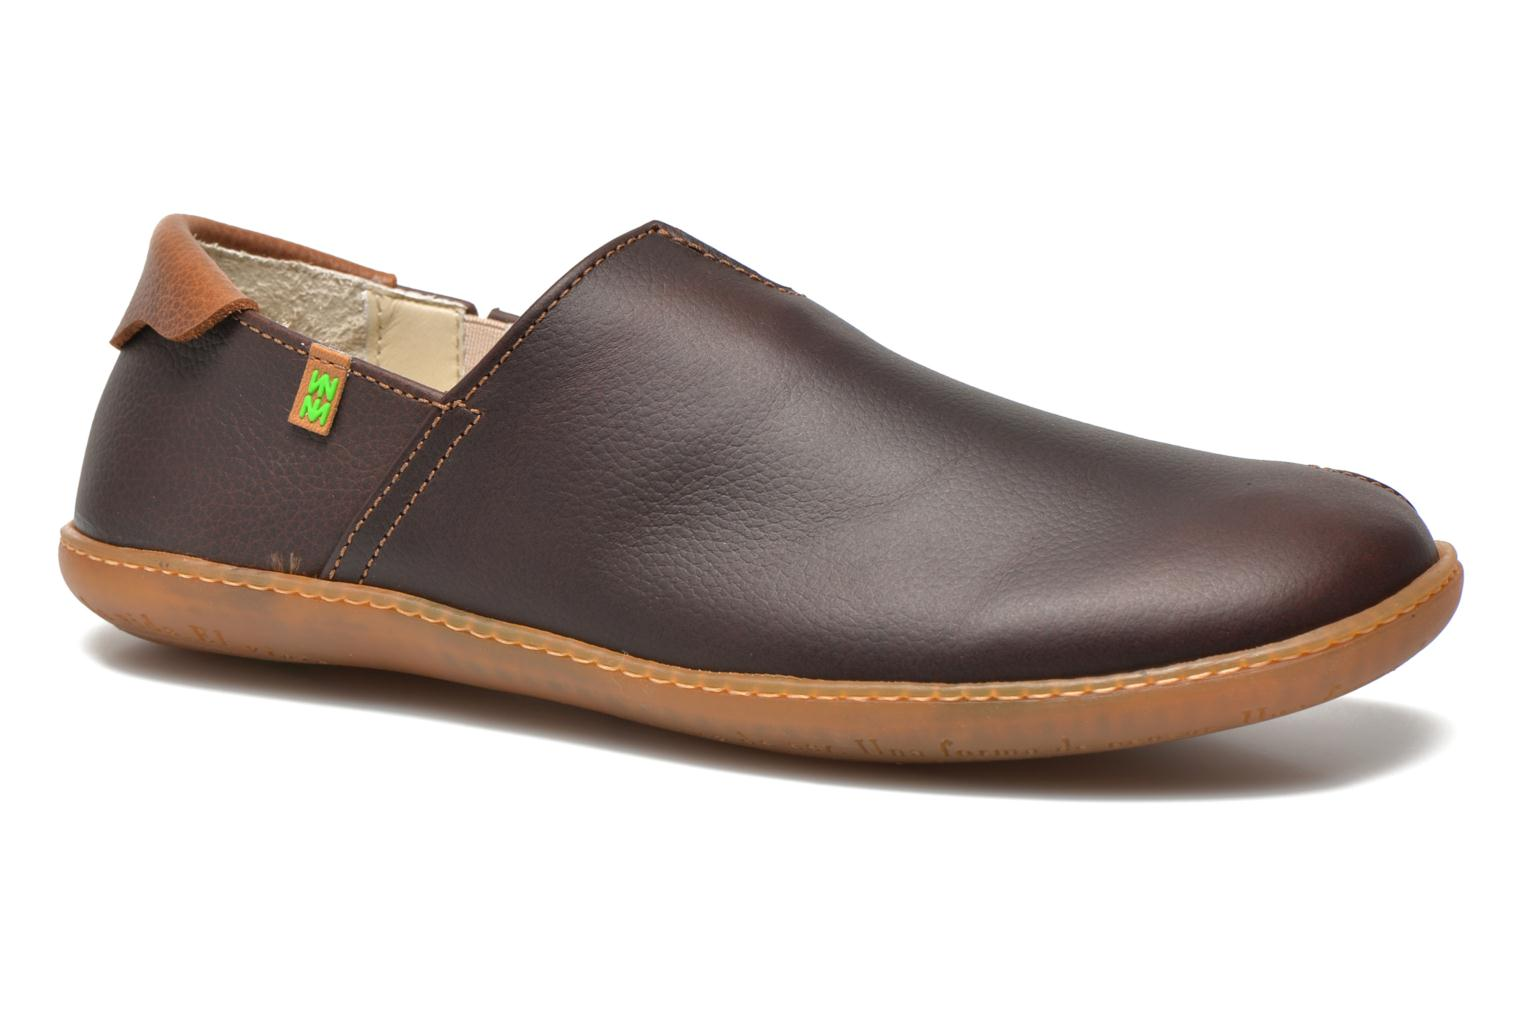 Viajero Moc N°275 Brown-Wood